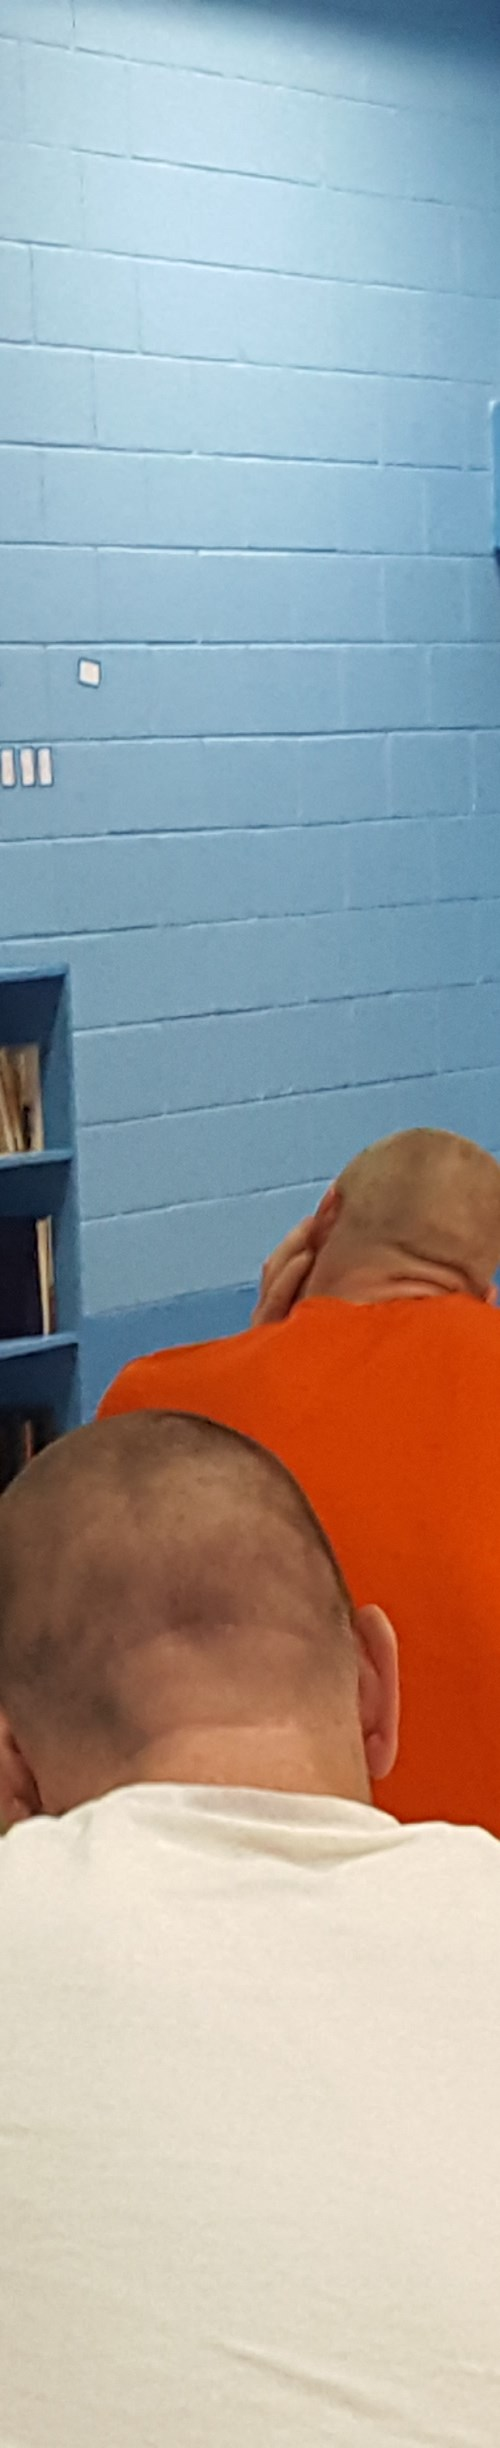 Prison ministry offers fresh start, faith | The Florida